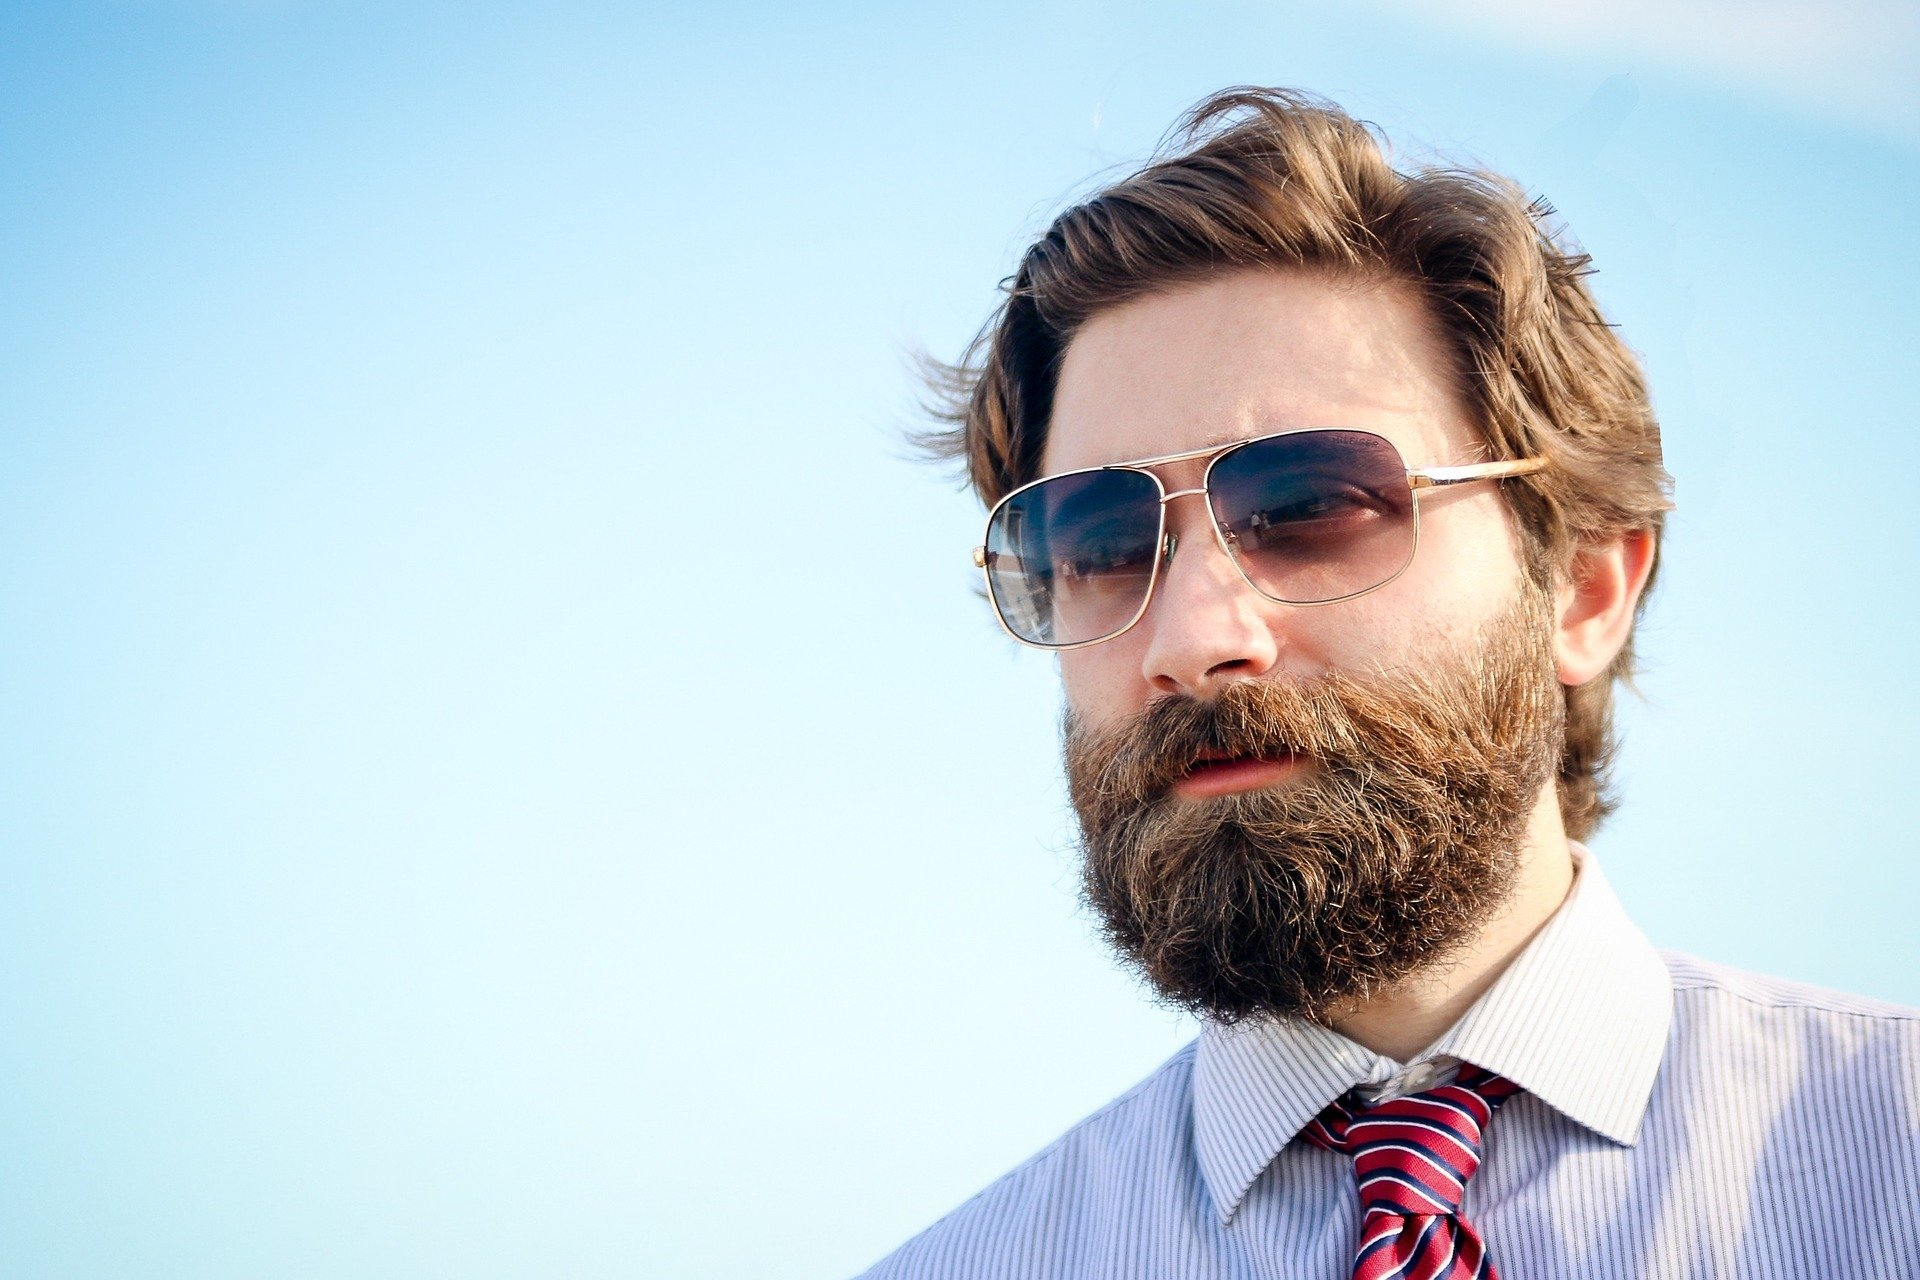 11 reasons why your beard does not grow